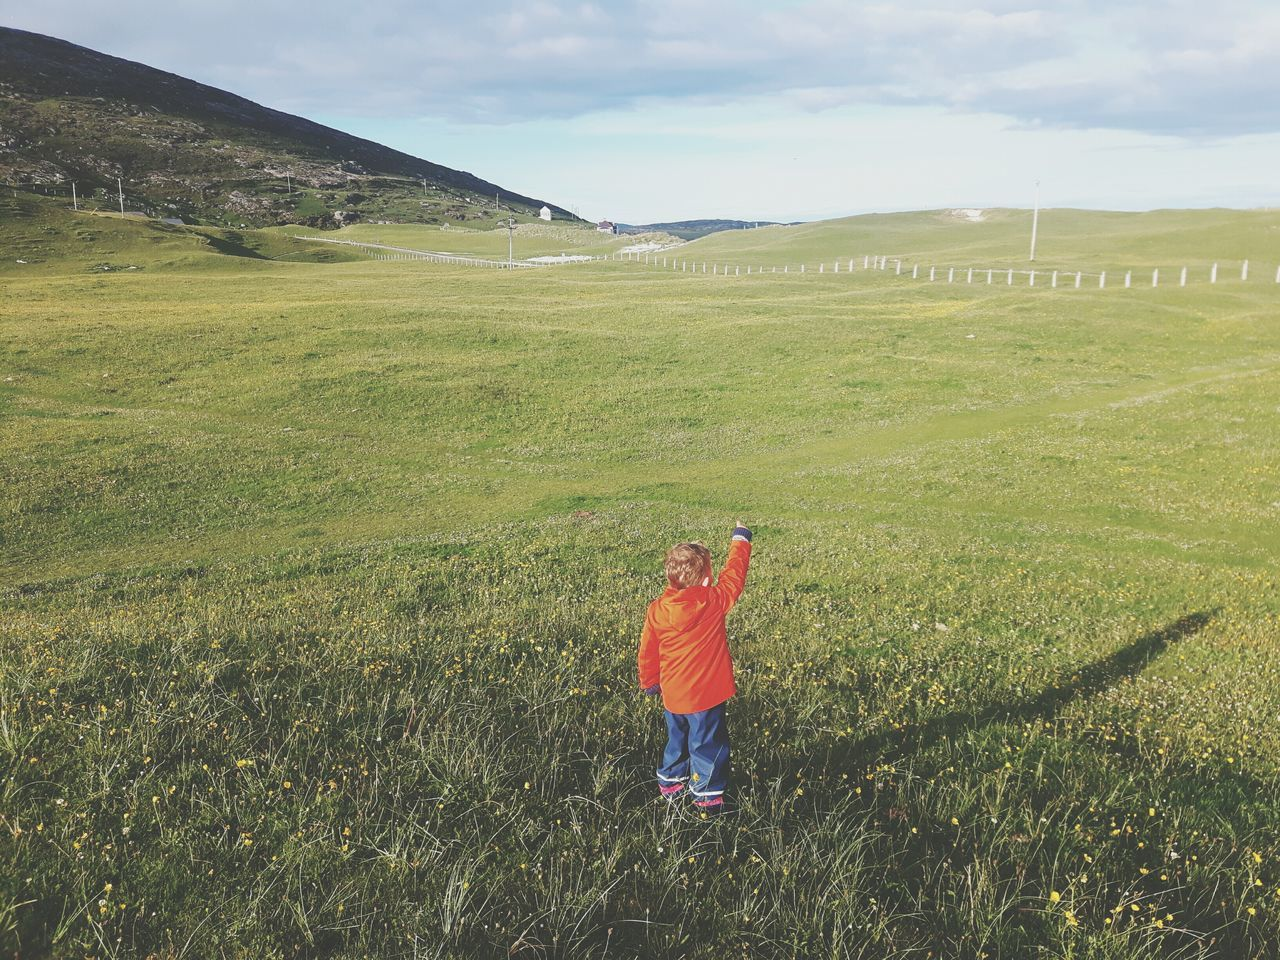 Grass One Person Childhood Children Only Child Outdoors EyeEmNewHere The Great Outdoors - 2017 EyeEm Awards Live For The Story Scottish Beaches Barra Isleofbarra Vatersay Outerhebrides Hebrides Toddler Boy Scotland One Boy Only Toddlersofeyem The Portraitist - 2017 EyeEm Awards Scottish Beach Childphotography Beauty In Nature Children Of The World